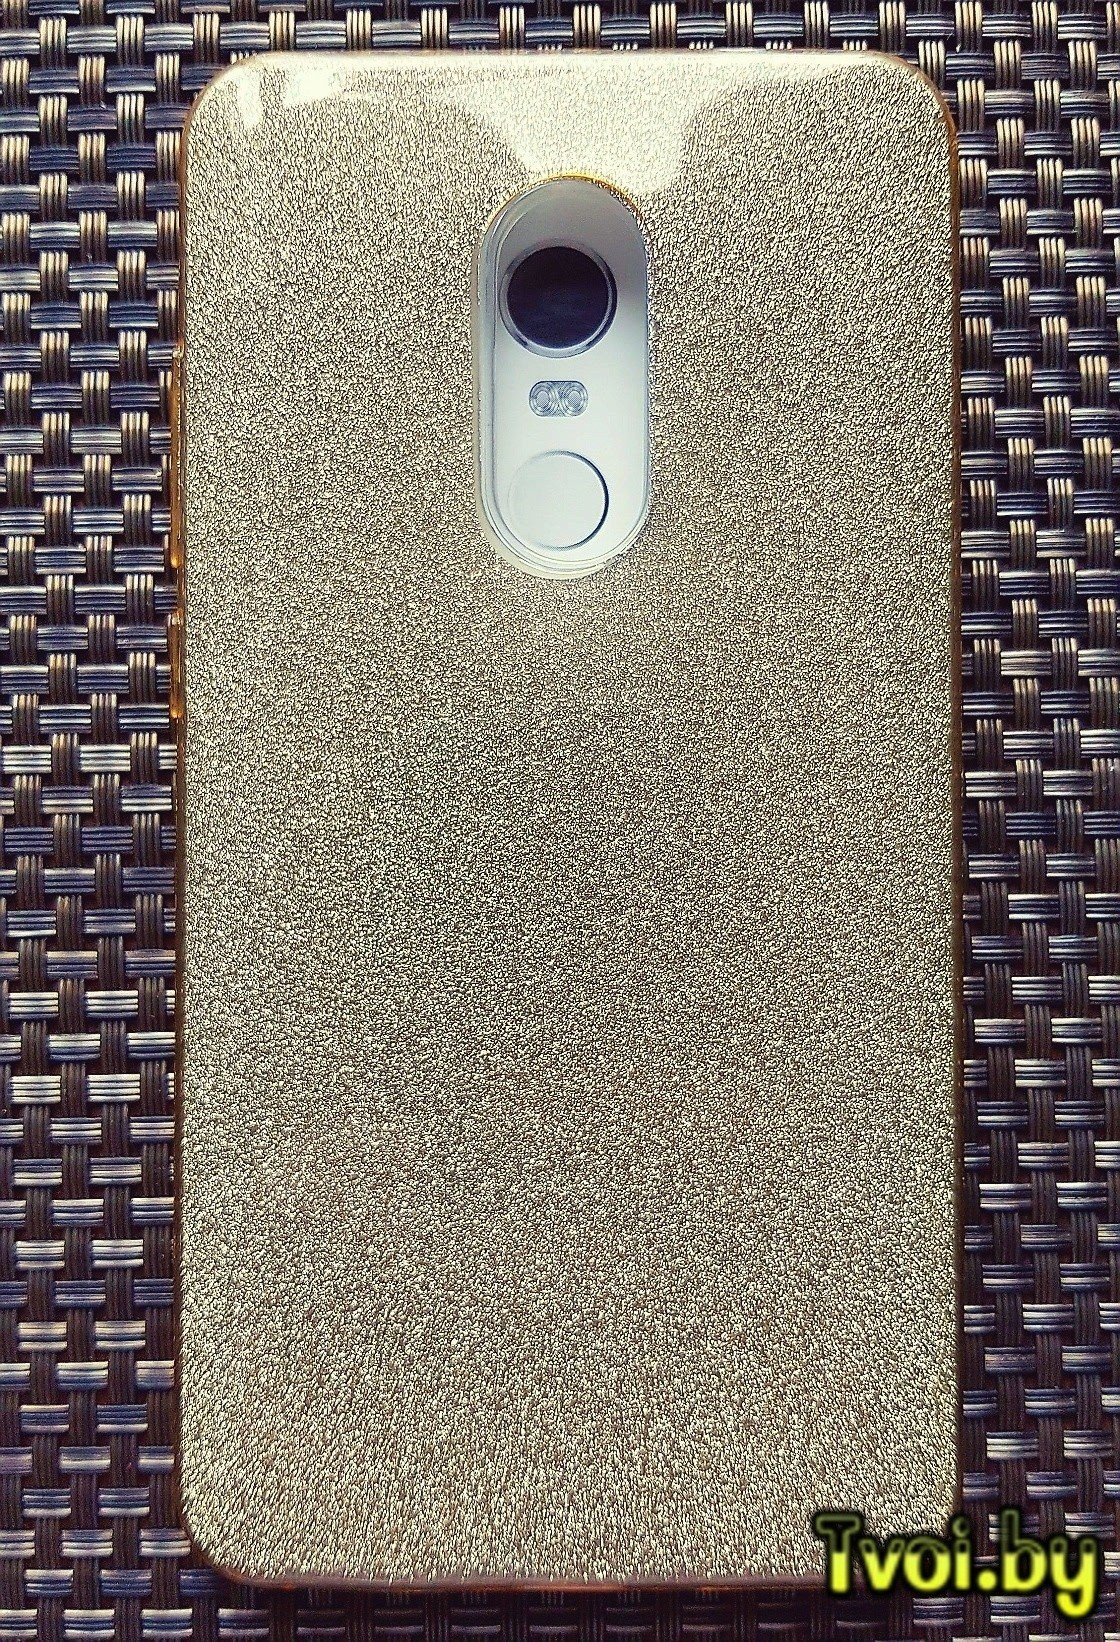 Чехол для Xiaomi Redmi Note 4 накладка Fashion (3 в 1), золотой